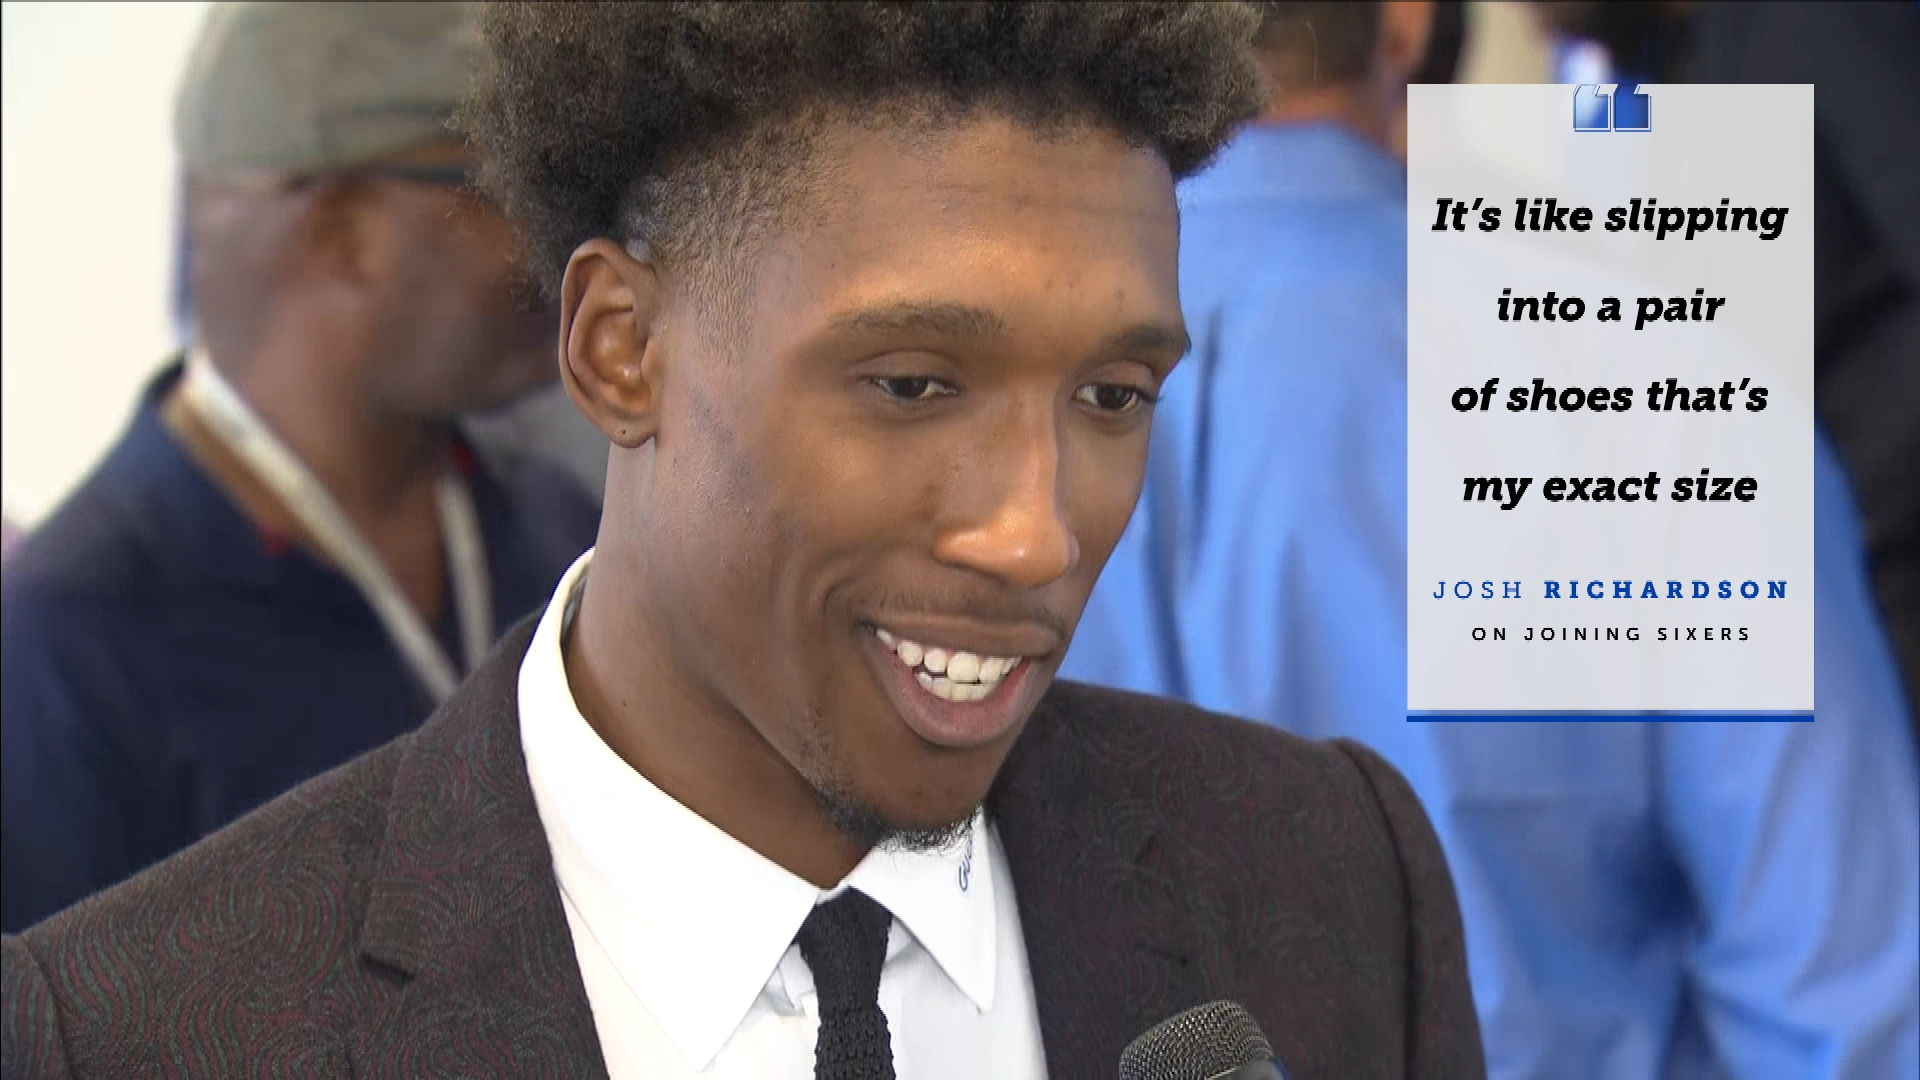 Why does Sixers' guard Josh Richardson feel like he fits so well in